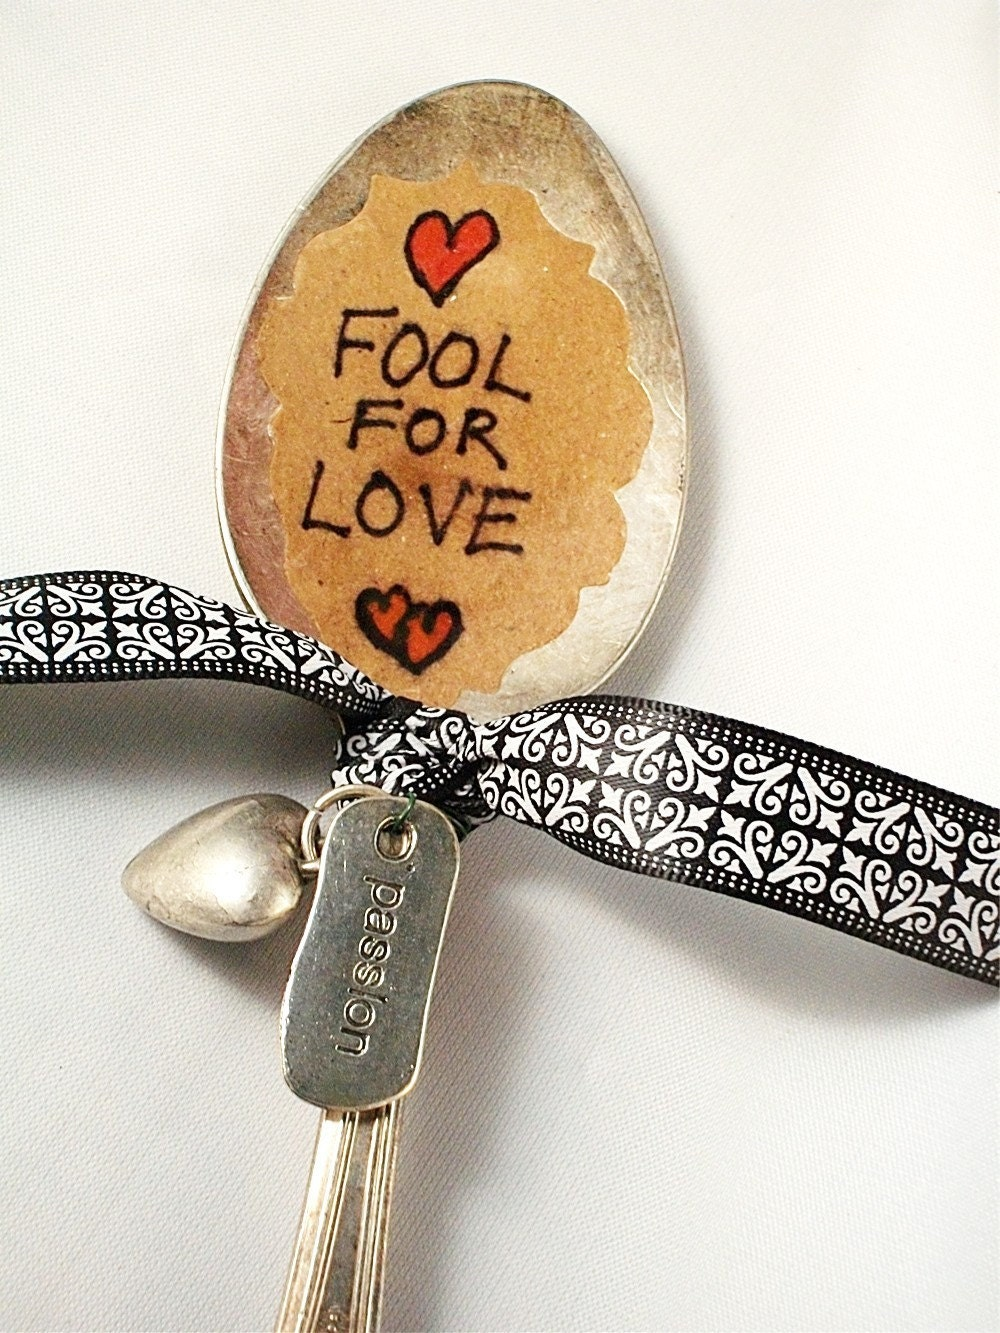 Vintage Silver Spoon Garden Marker Fool For Love